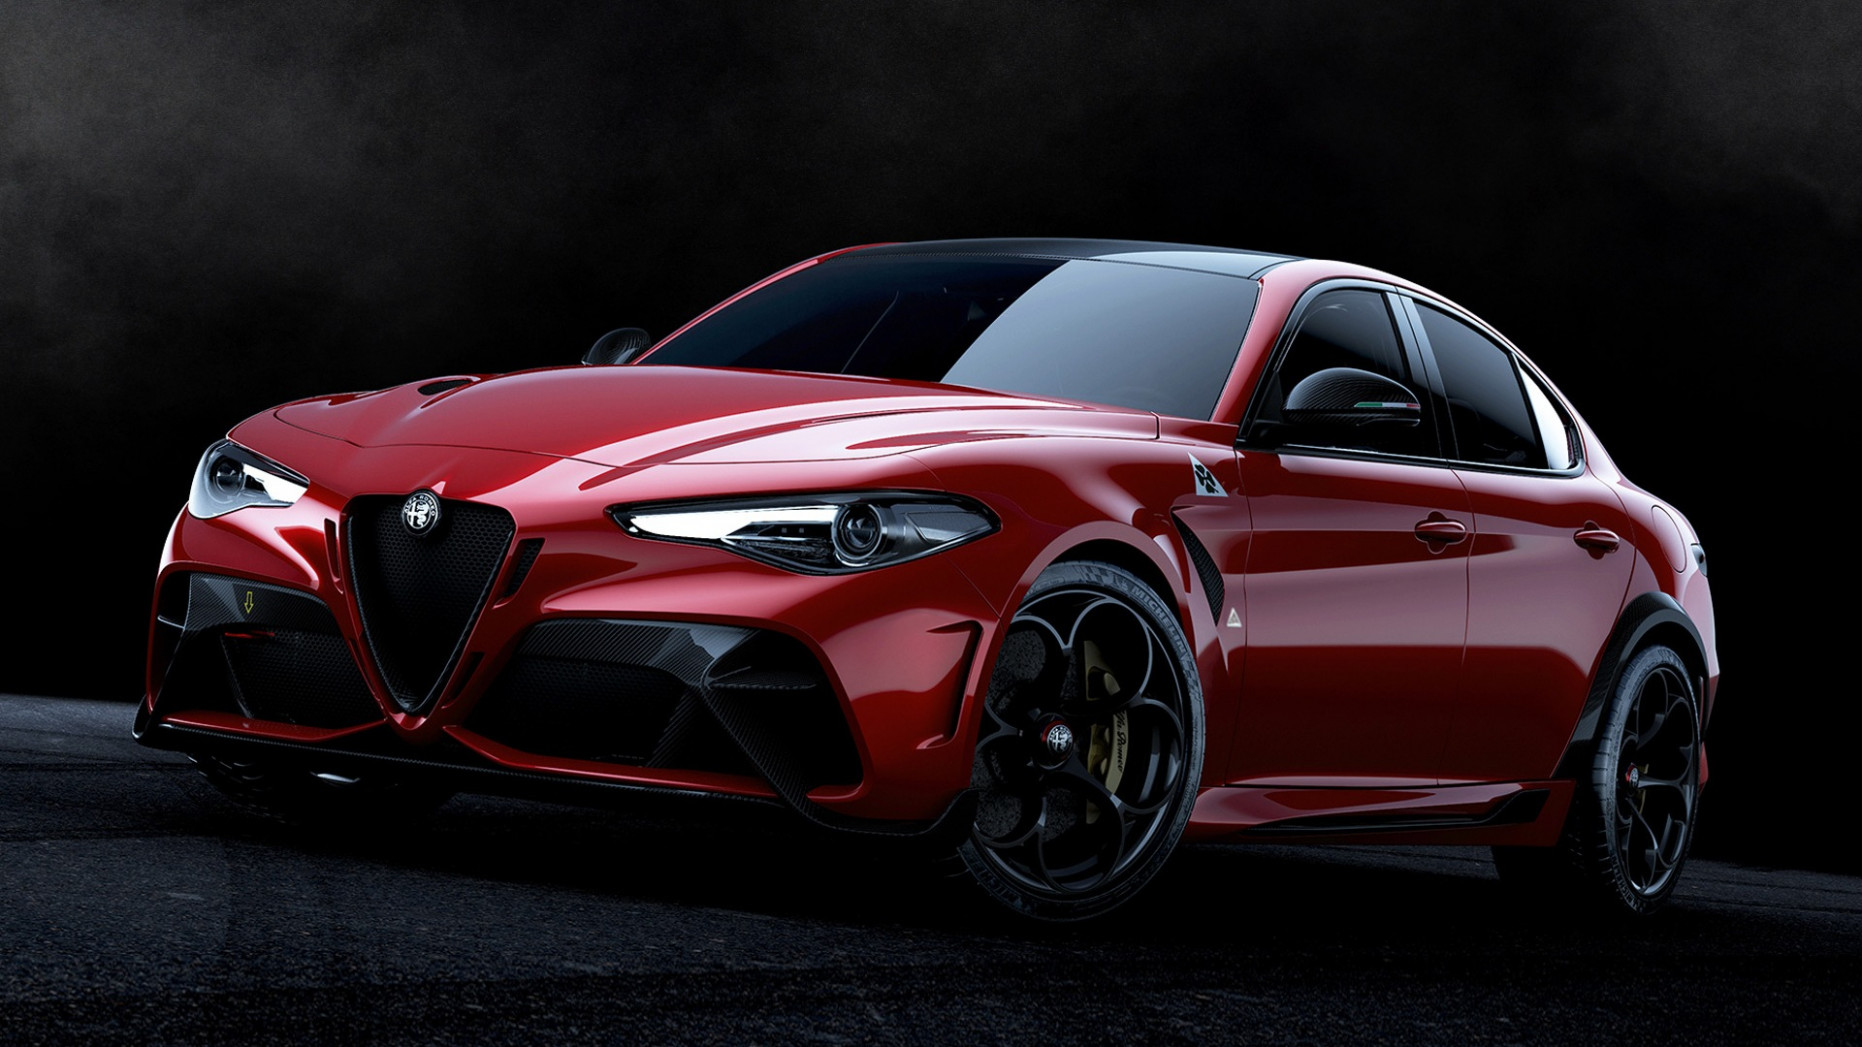 Redesign and Concept 2022 Alfa Romeo Giulietta